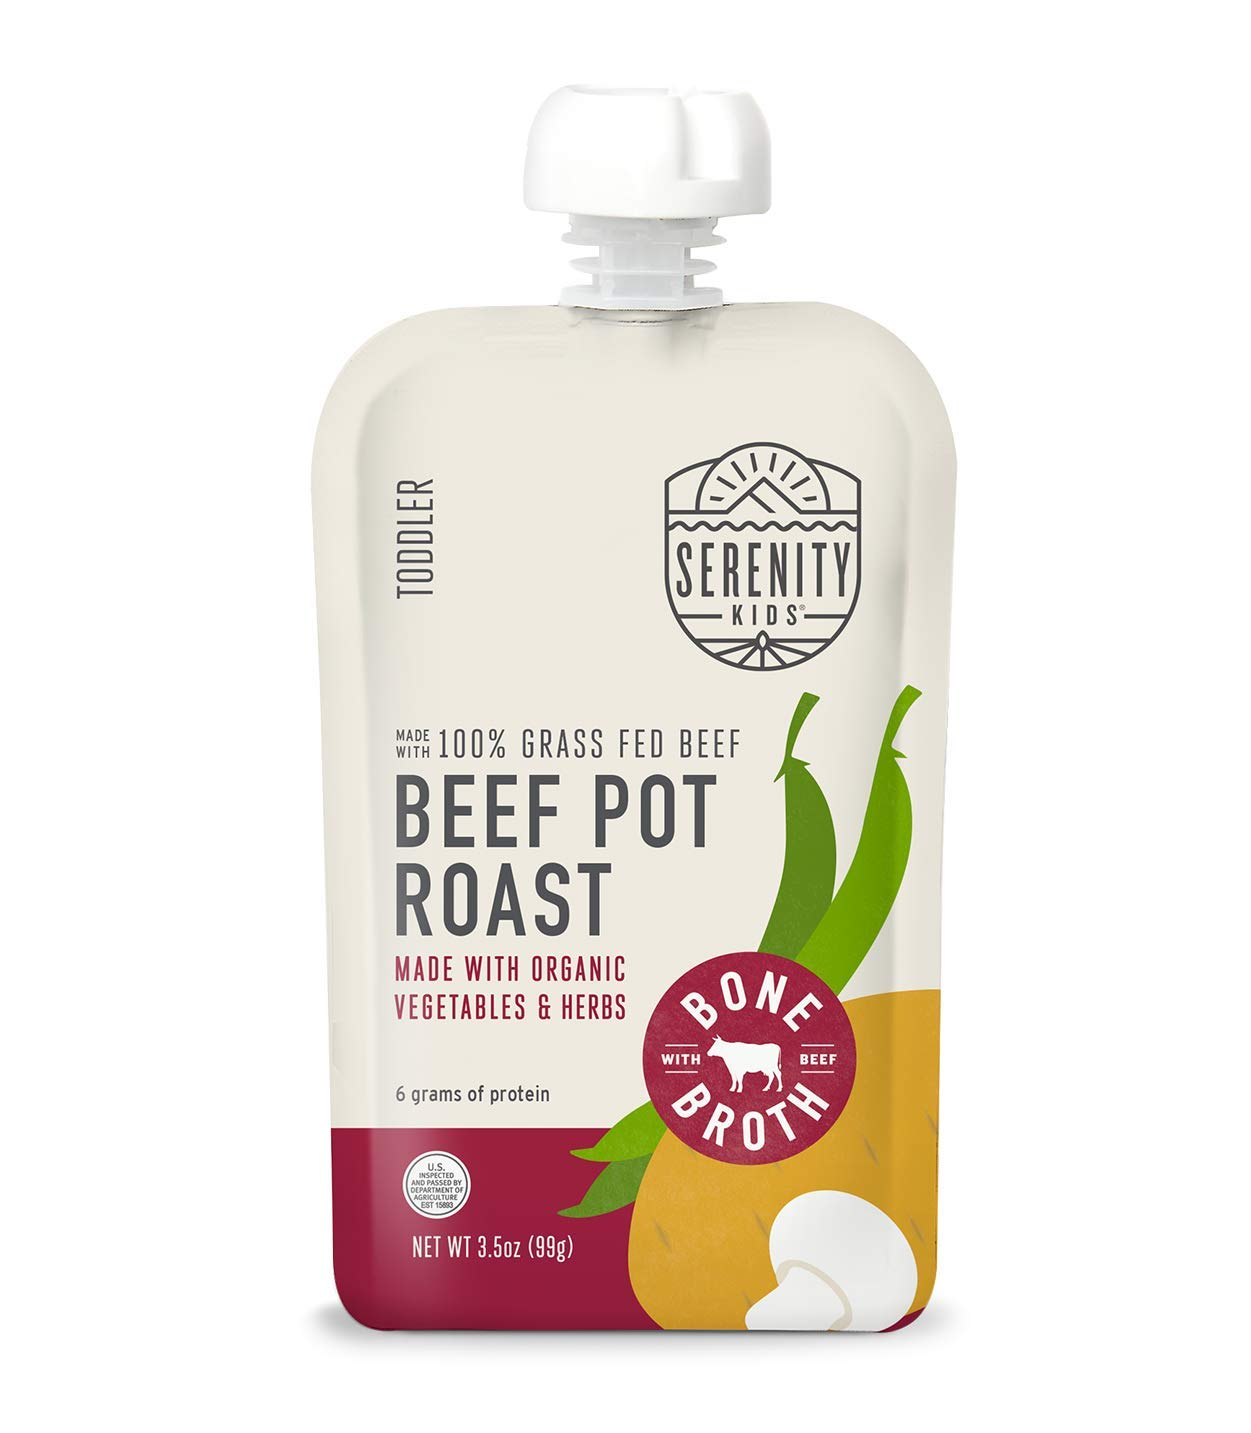 Serenity Kids Toddler Purees, Grass Fed Beef Pot Roast with Bone Broth, For 6+ Months, 3.5 Ounce Pouch (12 Count)